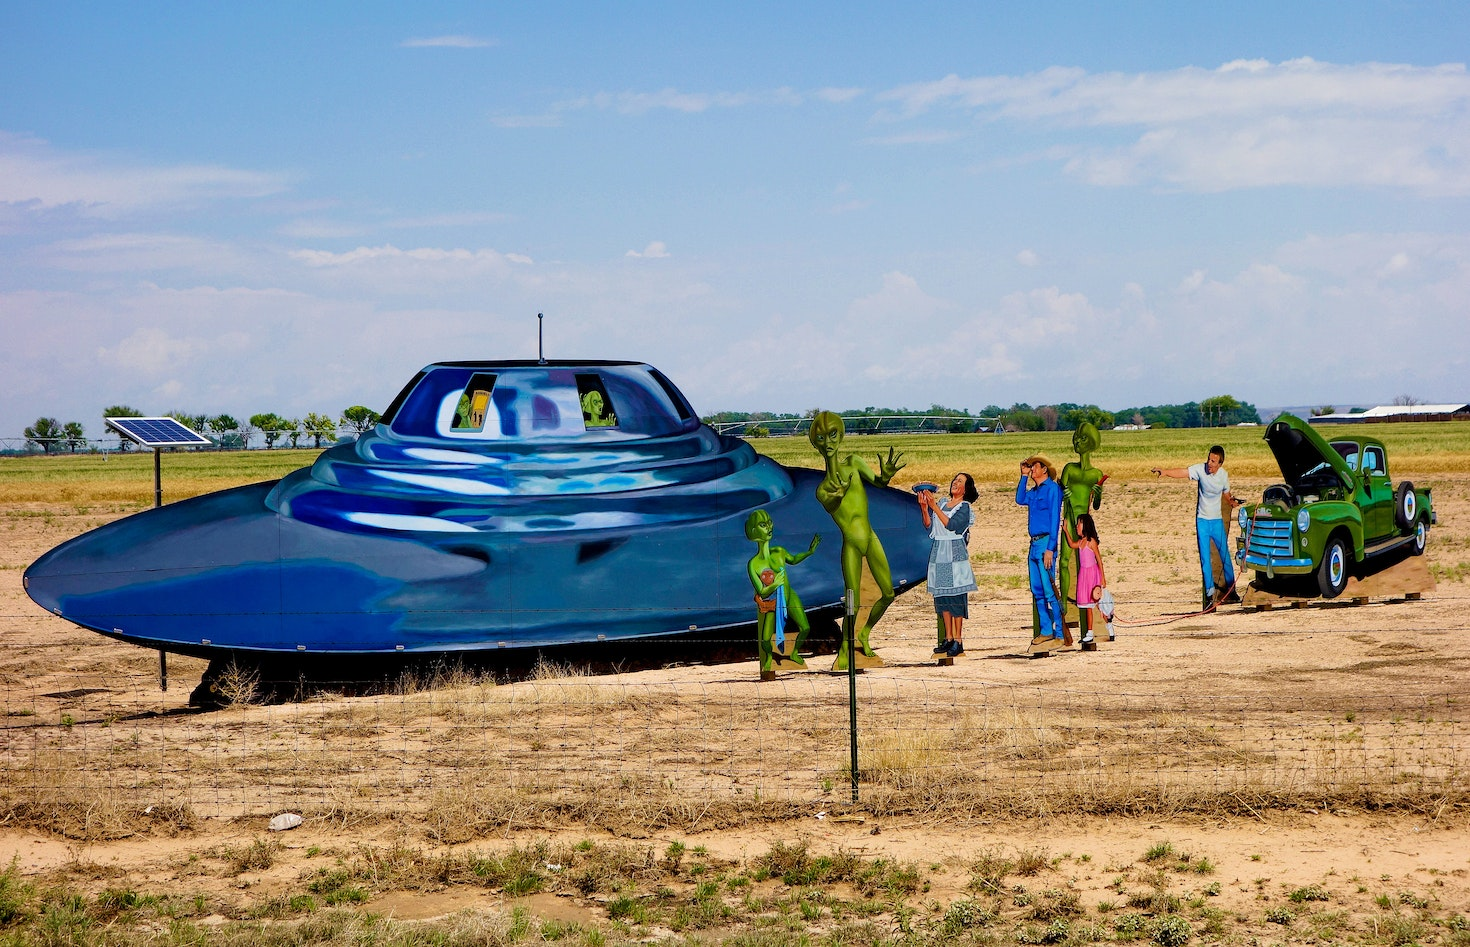 Just a taste of the oddities to be found in and around Roswell, New Mexico © Robert Meyers-Lussier / 500px